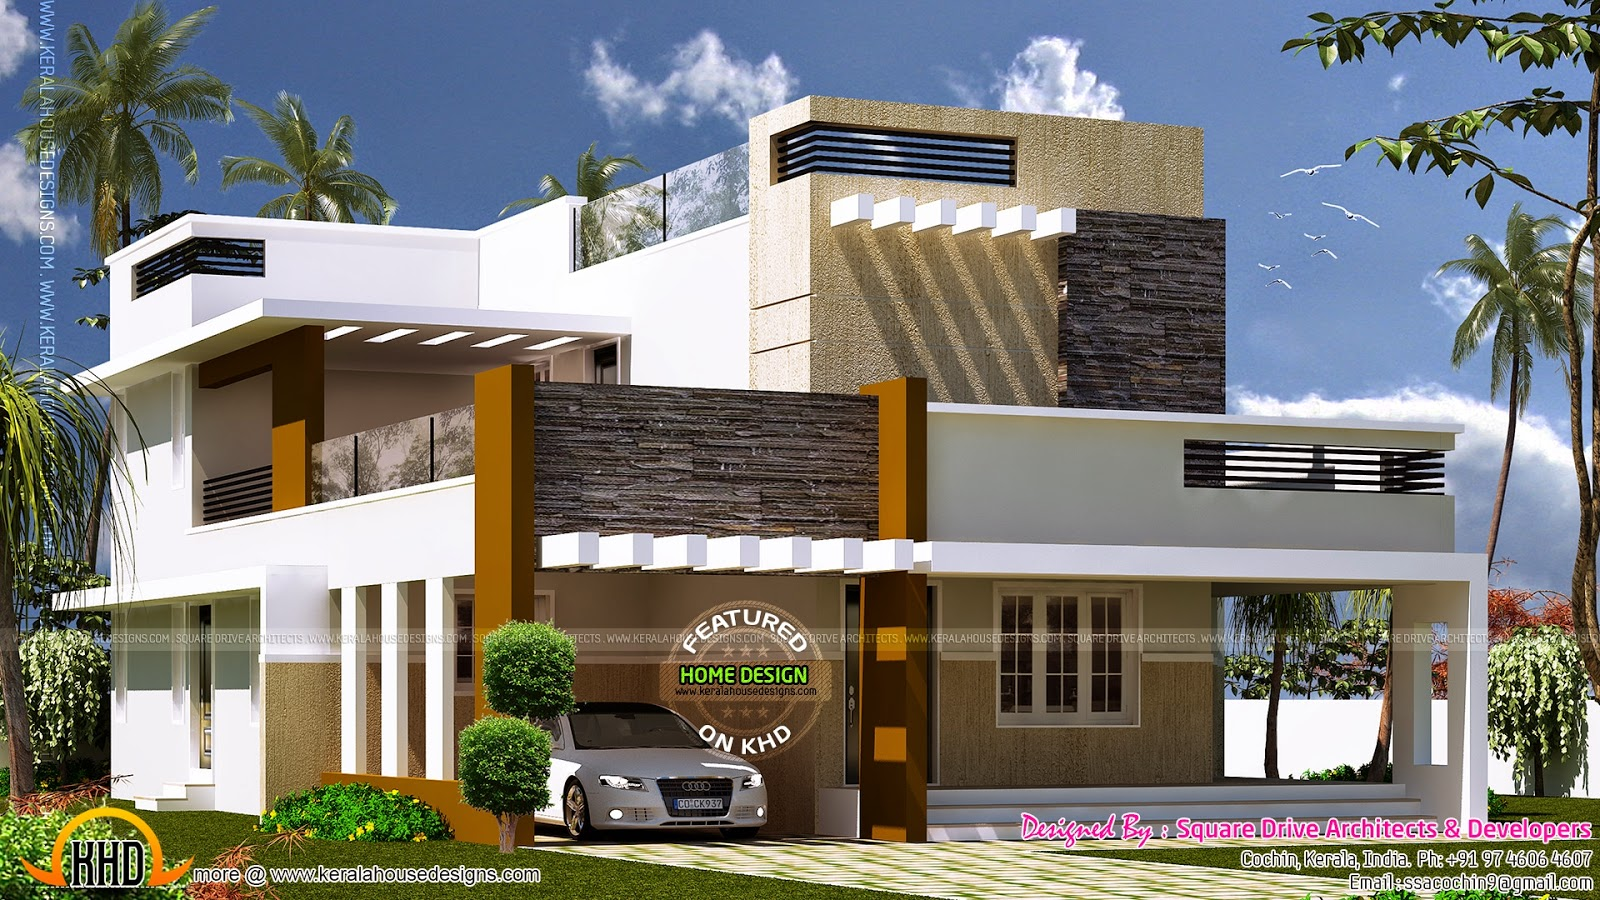 Exterior design of contemporary villa kerala home design and floor plans Indian small house exterior design